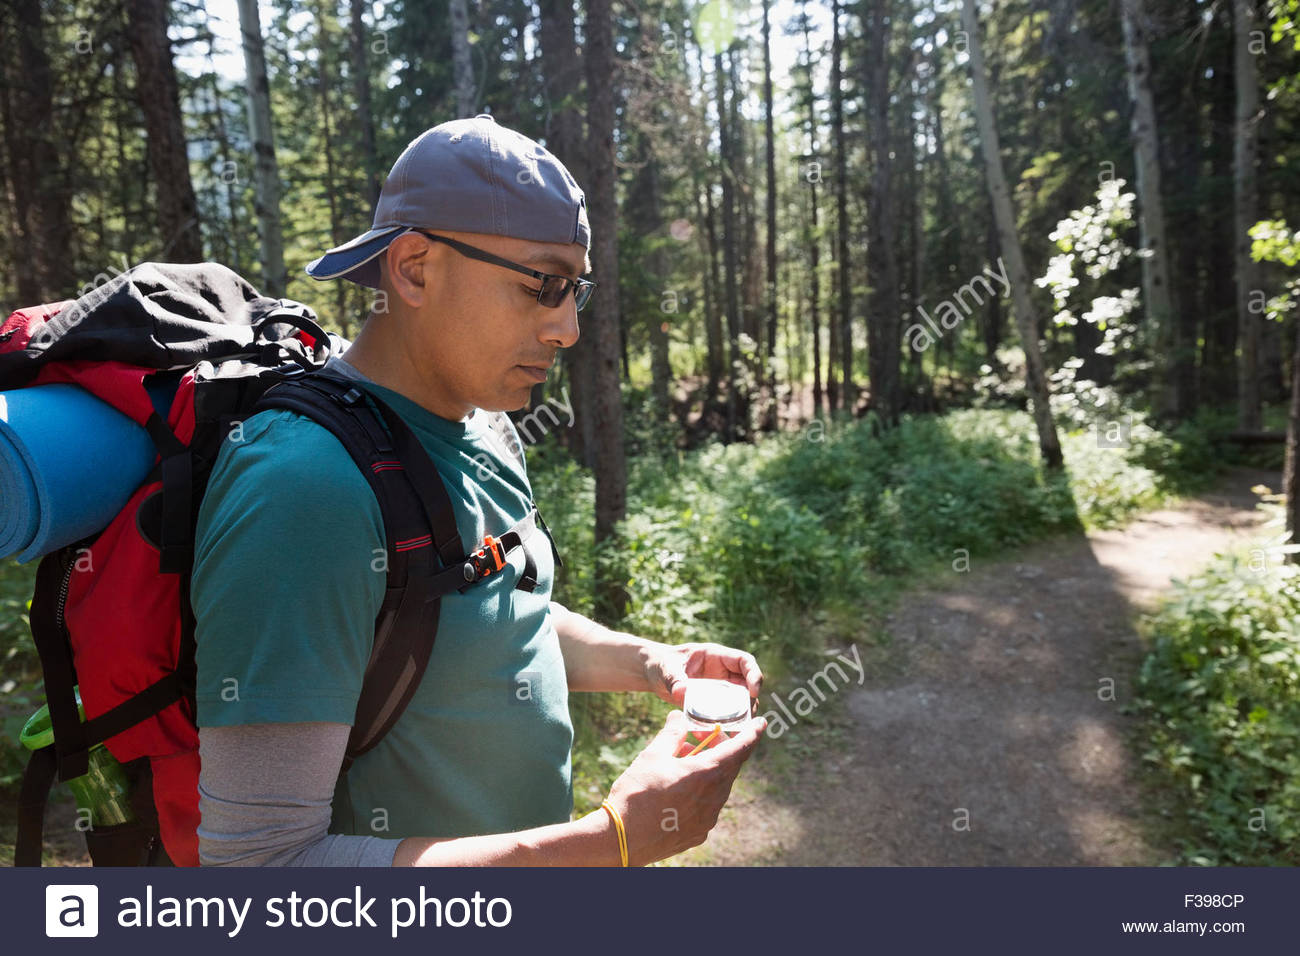 Backpacker checking compass on trail in woods - Stock Image